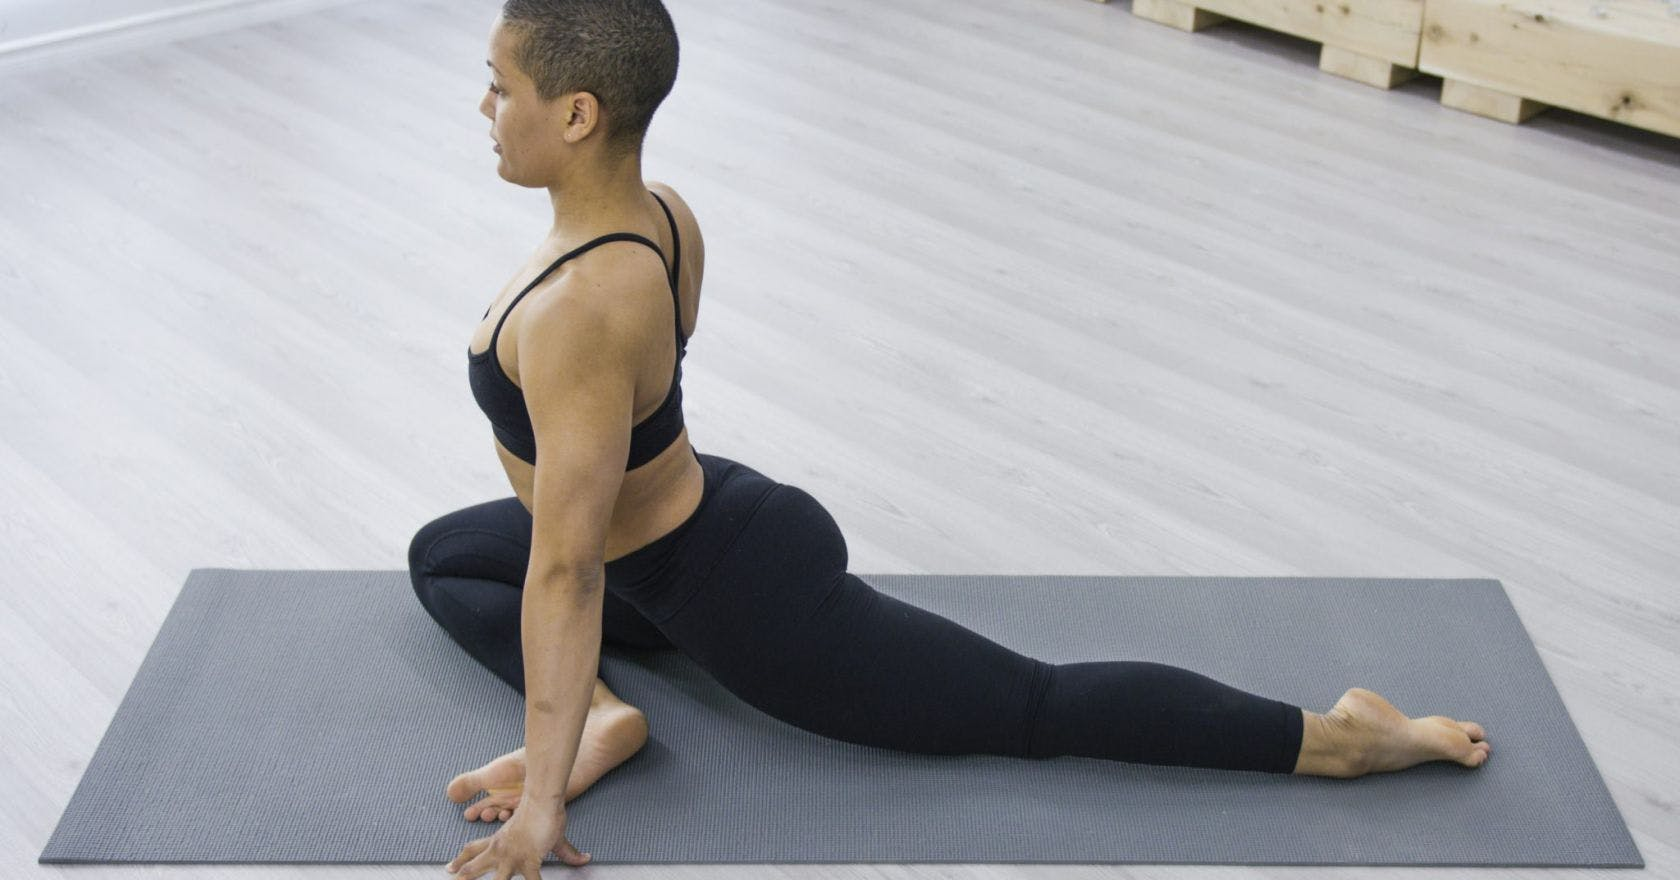 Relieve tight glutes with these simple-yet-effective stretches